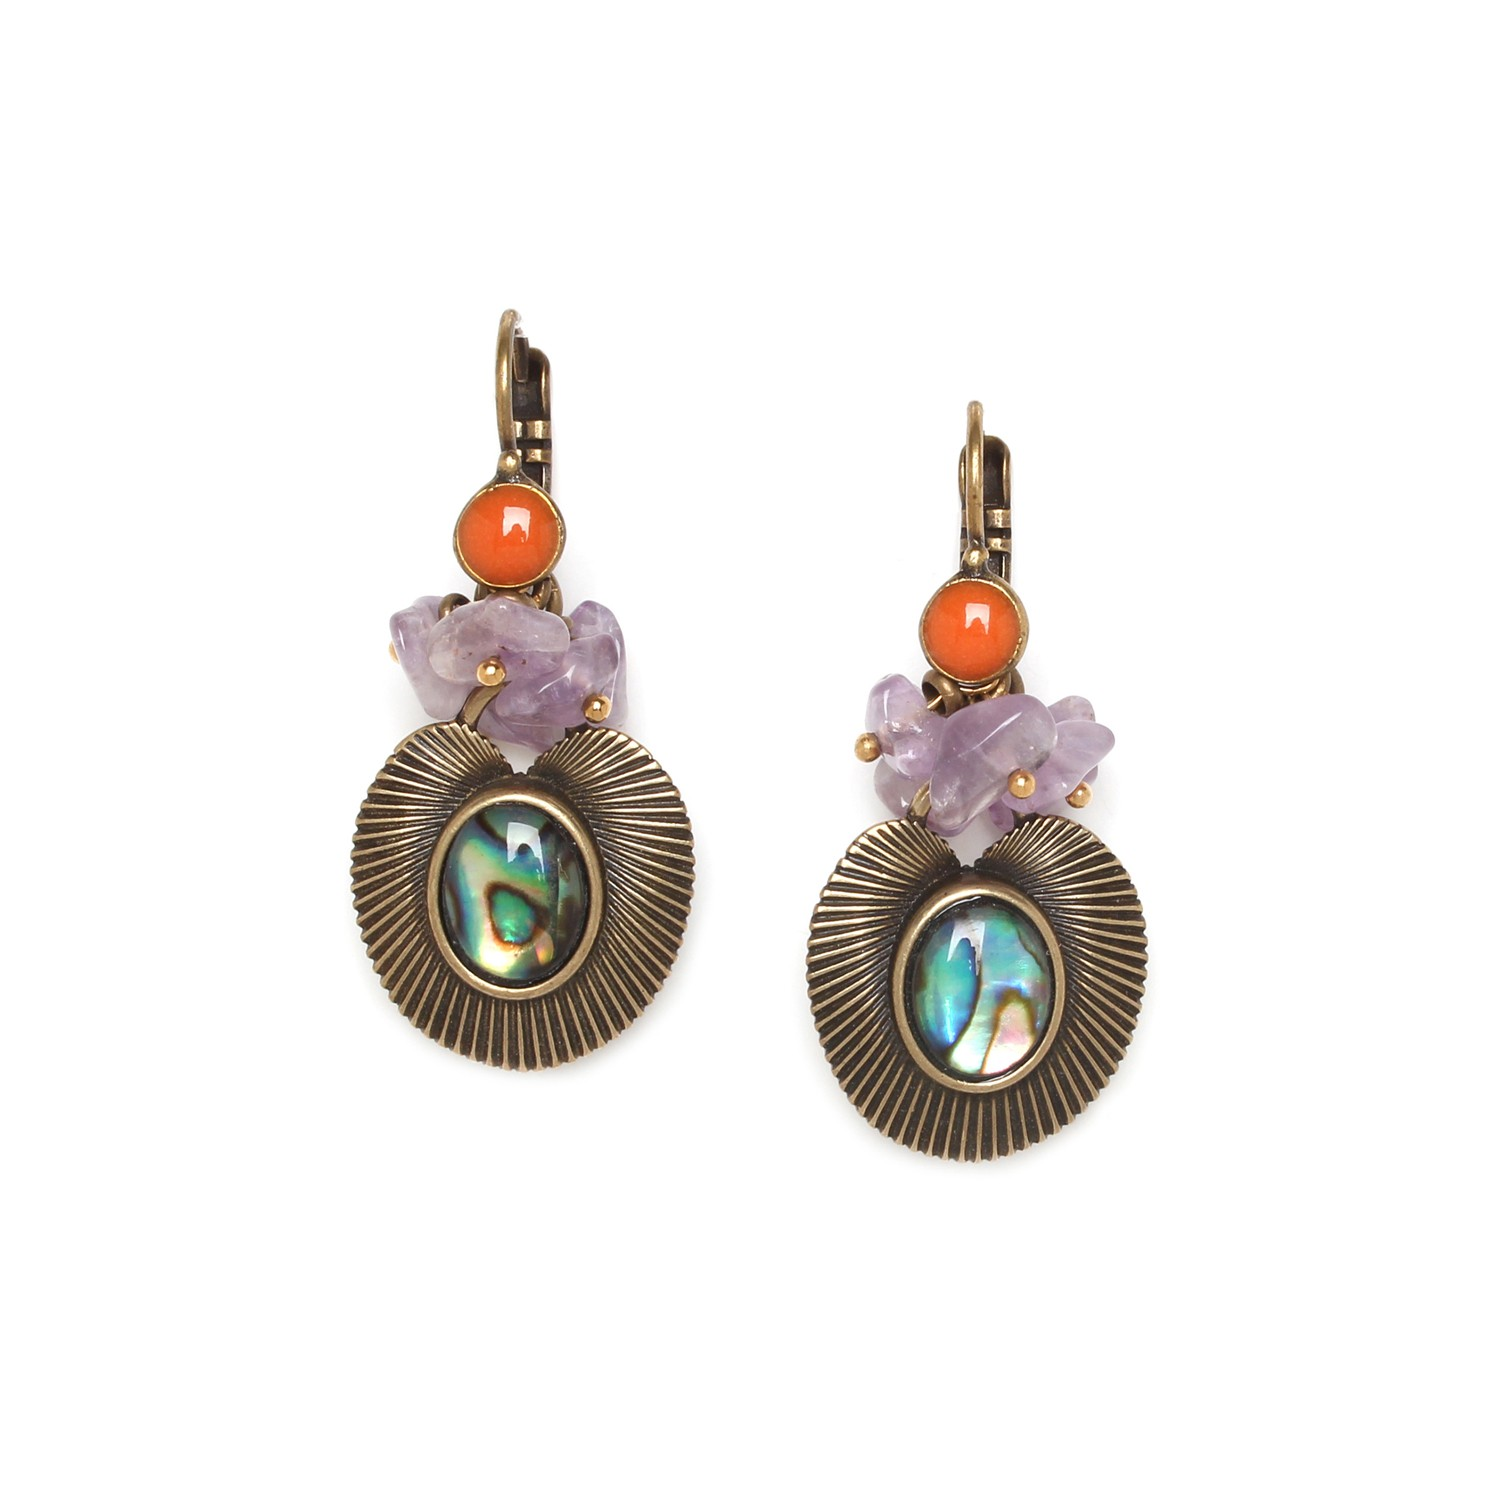 MYSTIQUE grape earrings